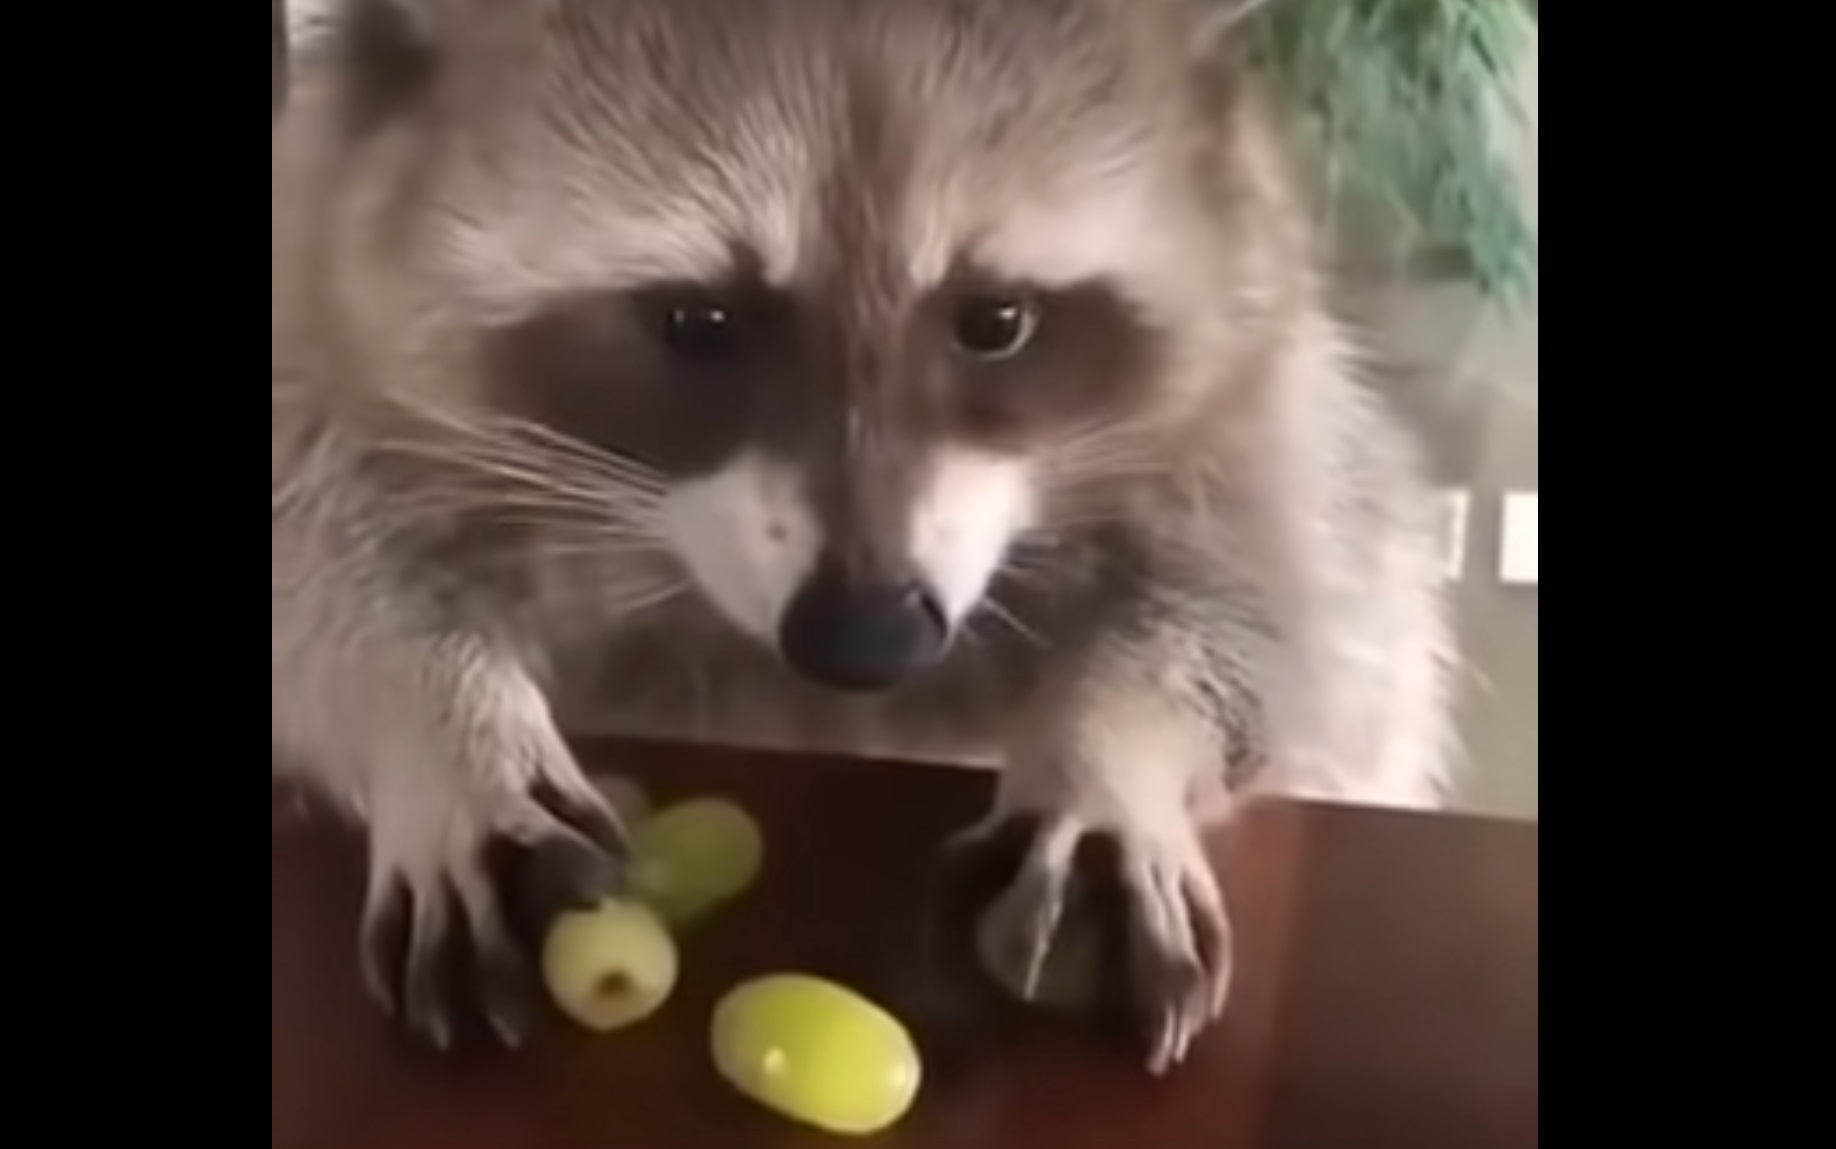 Don't touch my grapes